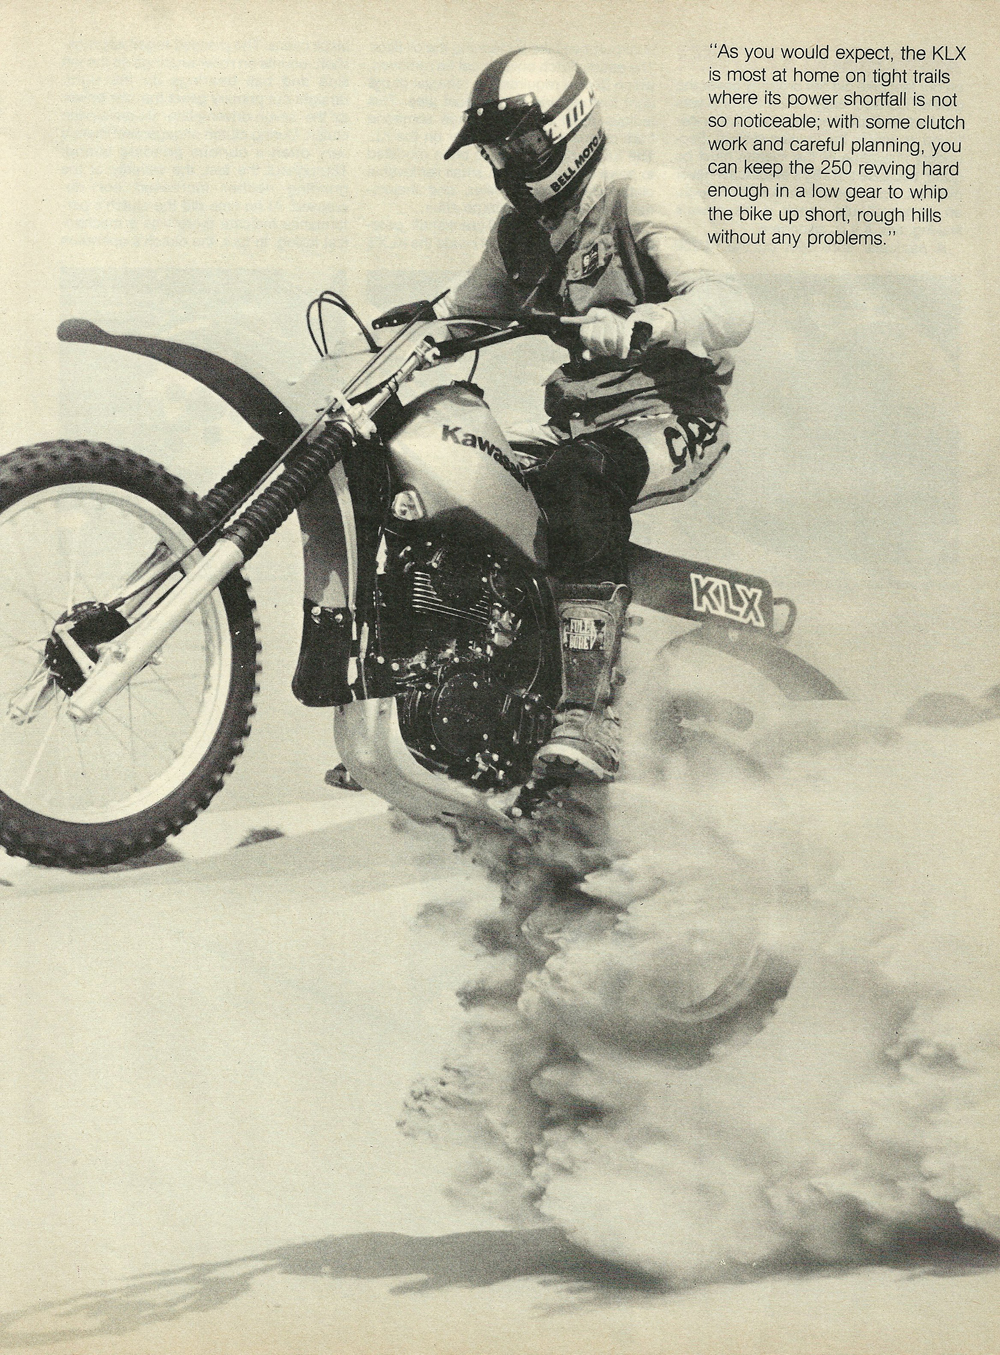 1979 Kawasaki KLX250 off road test 6.jpg